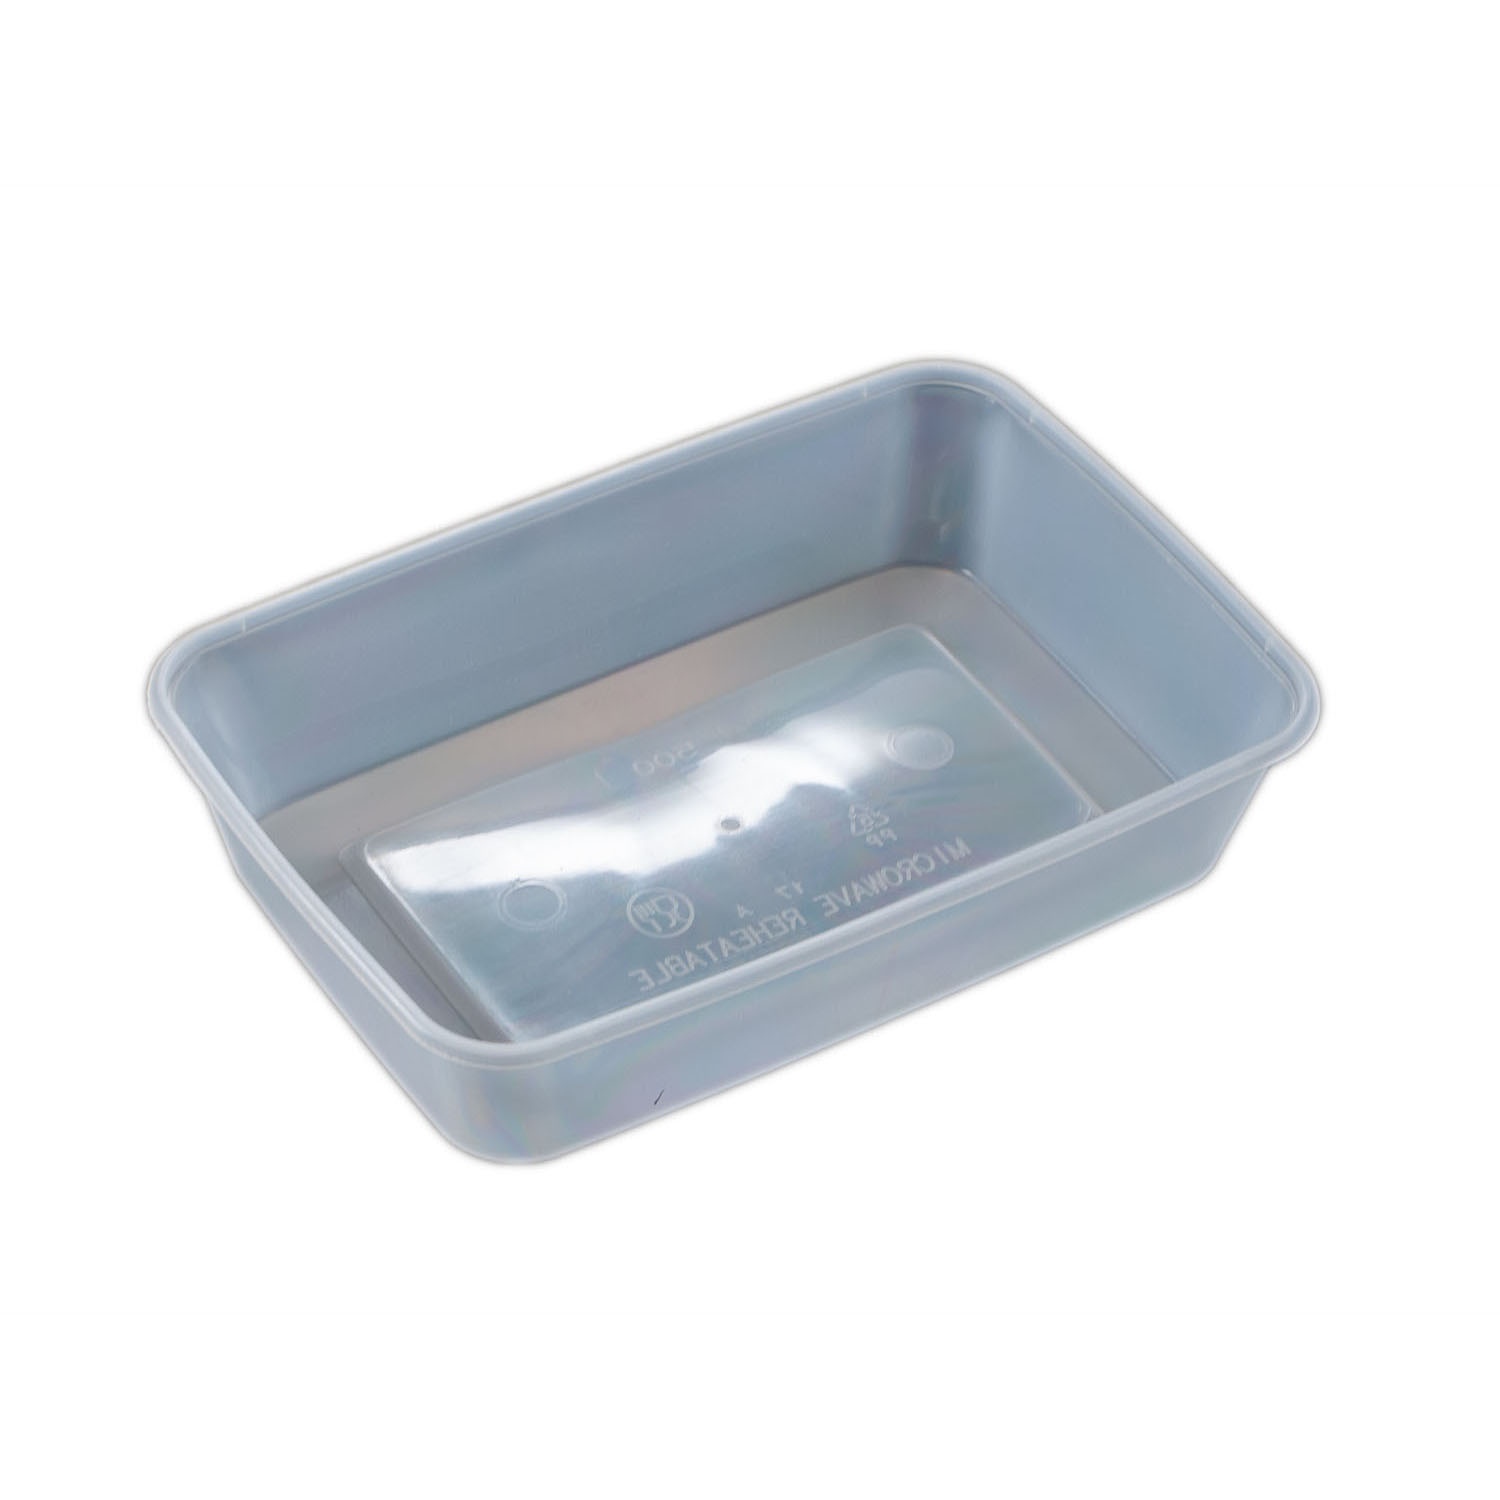 IK-FRZ500 containers & lid   500ml 50 per sleeve 250 per carton (5x50 bases and lid)